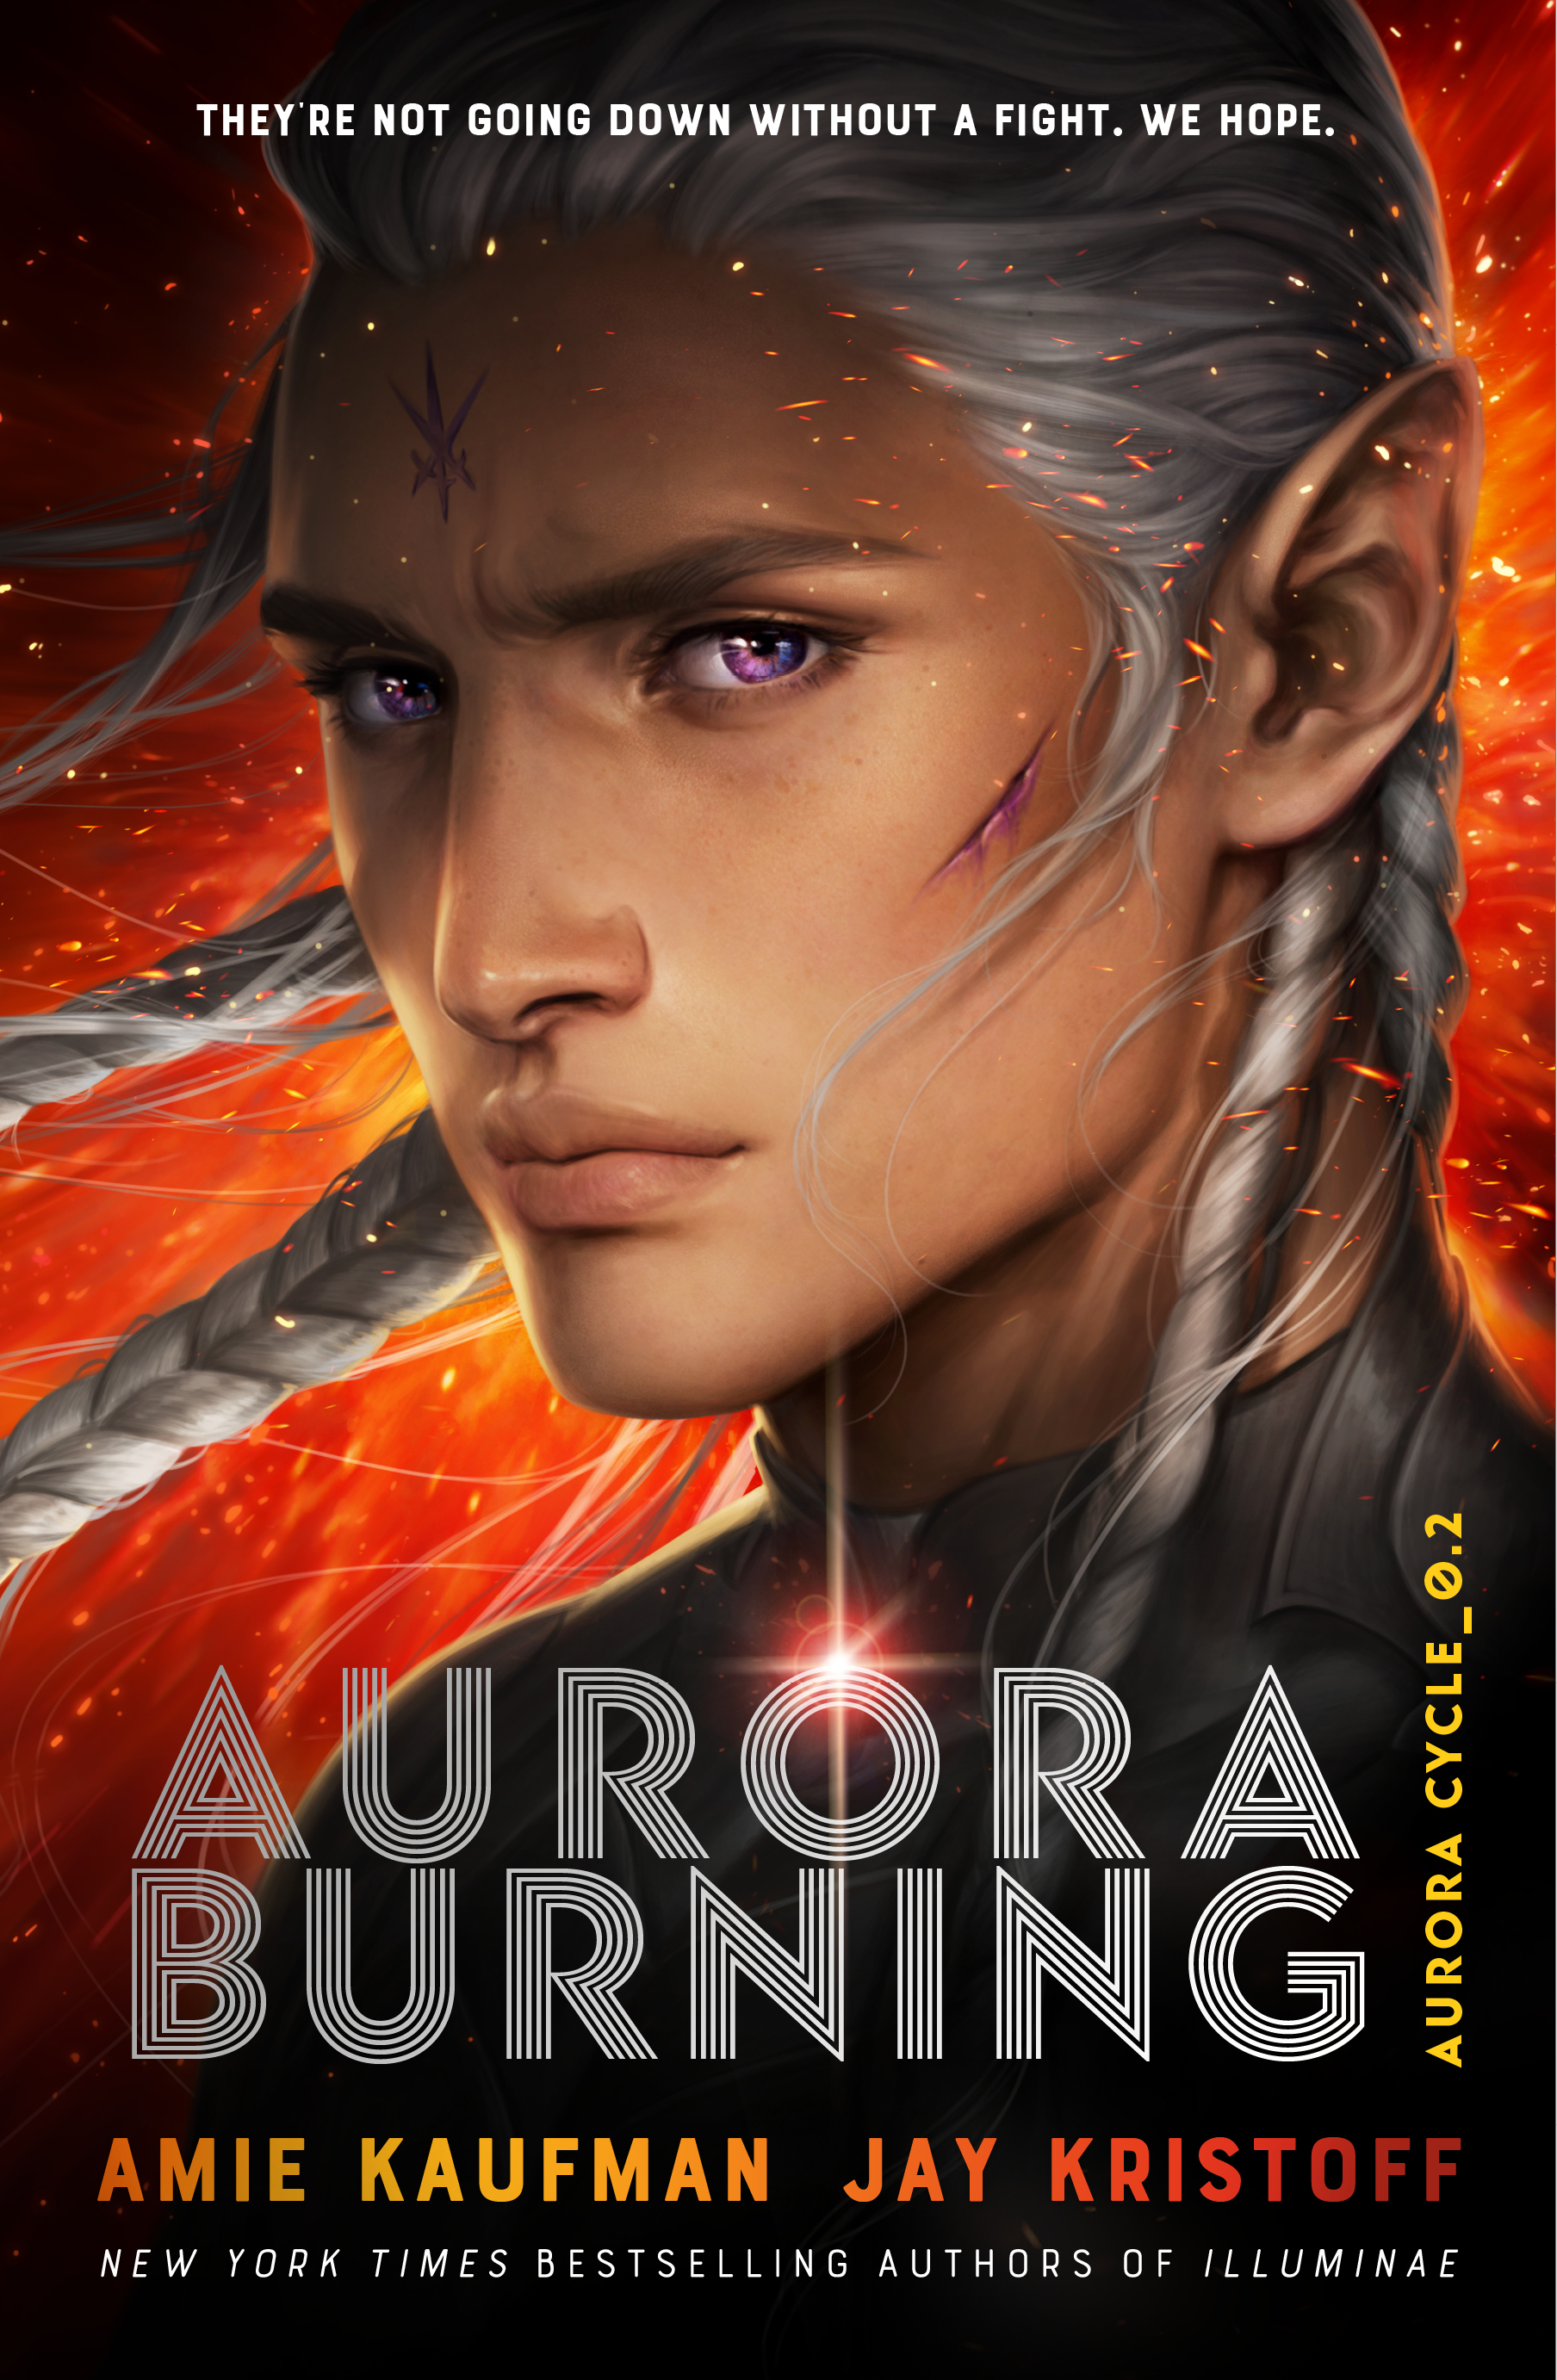 Aurora Burning (The Aurora Cycle, #2)